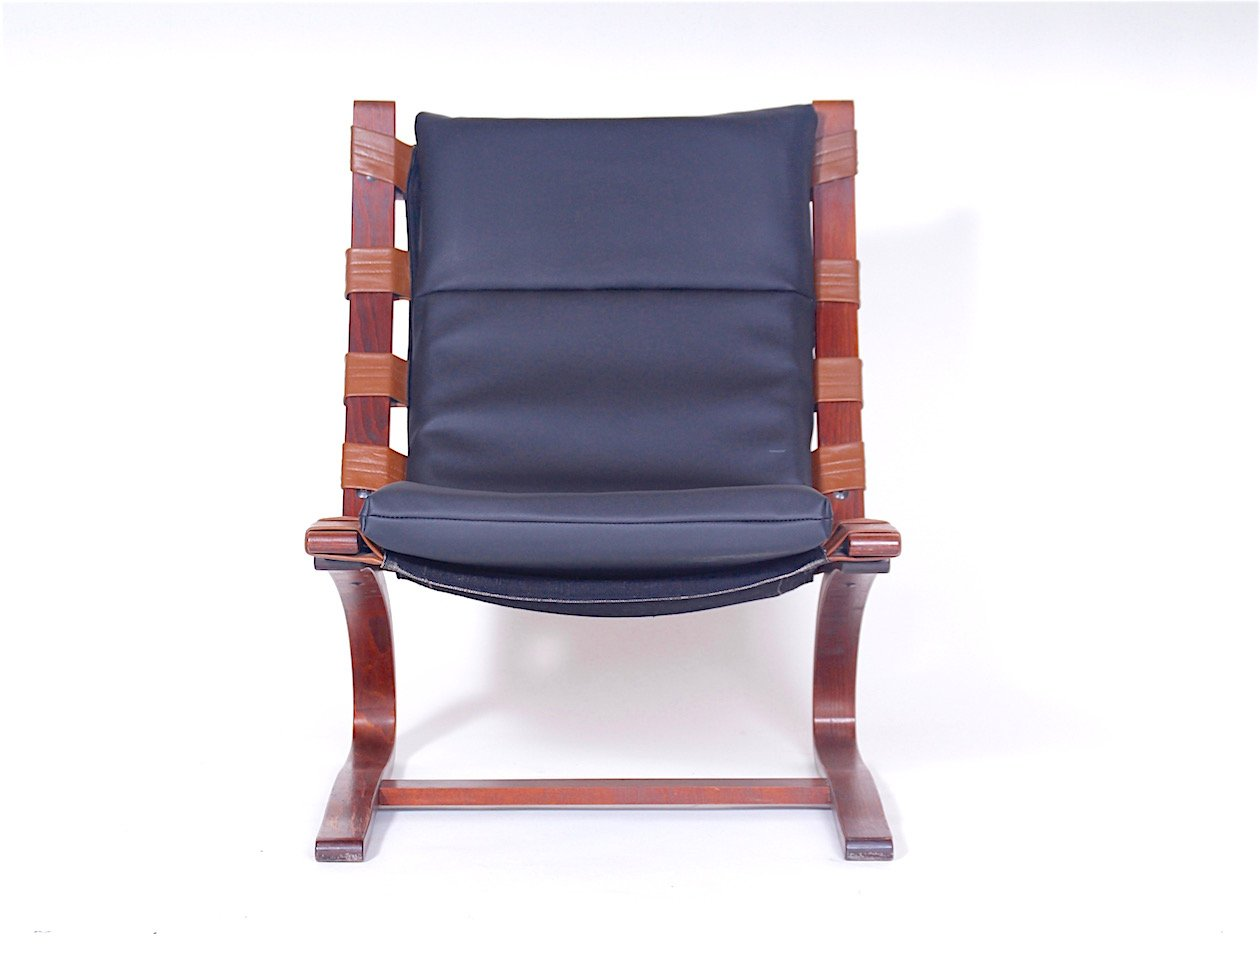 Elsa Chair Lounge Chair By Elsa Solheim 1970s For Sale At Pamono